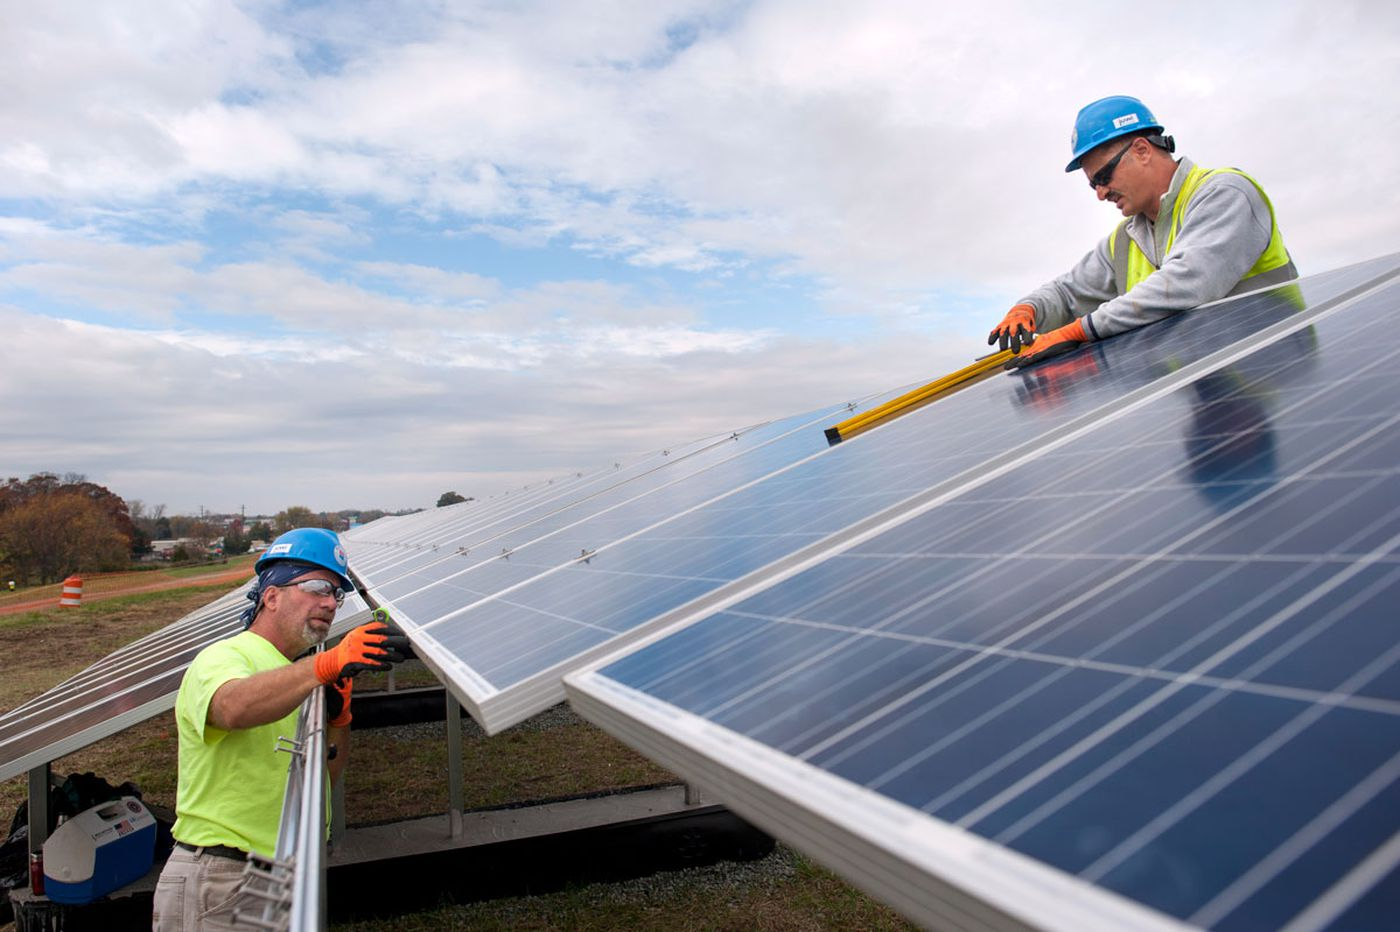 Pennsylvania had more solar projects installed this year, but still lags far behind nearby states